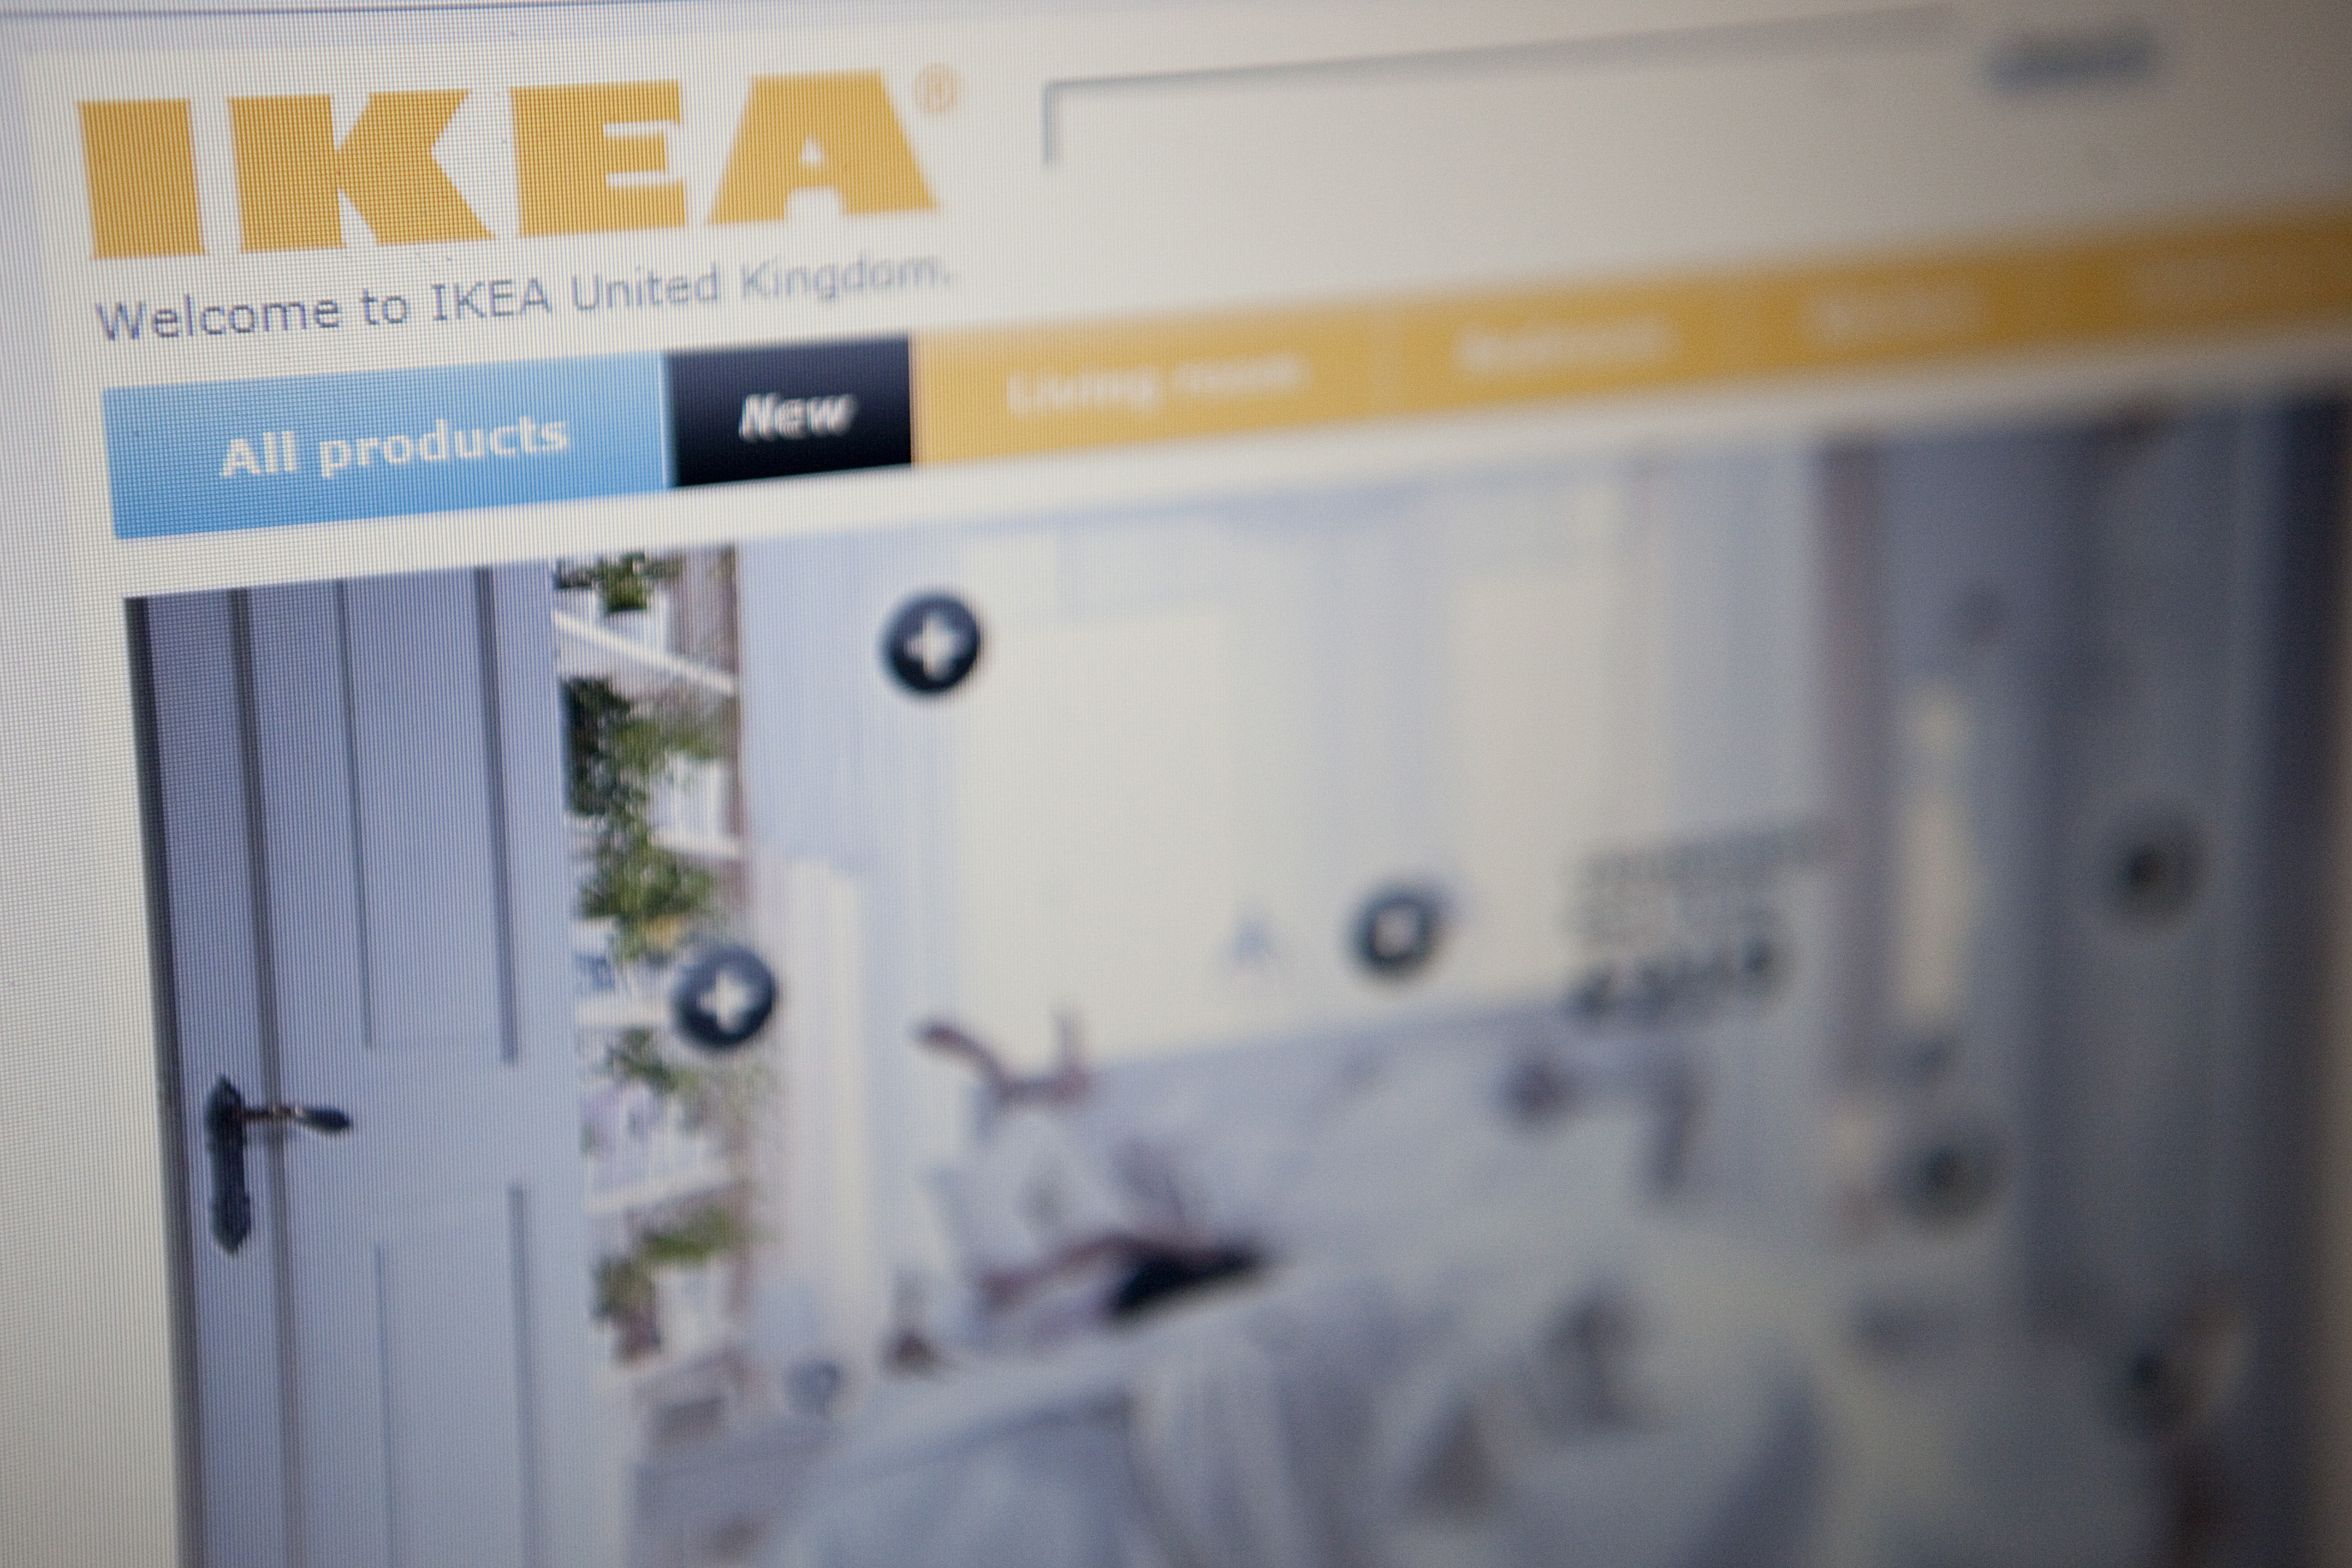 Ikea's Belated Embrace of Online Shopping Is Finally Paying